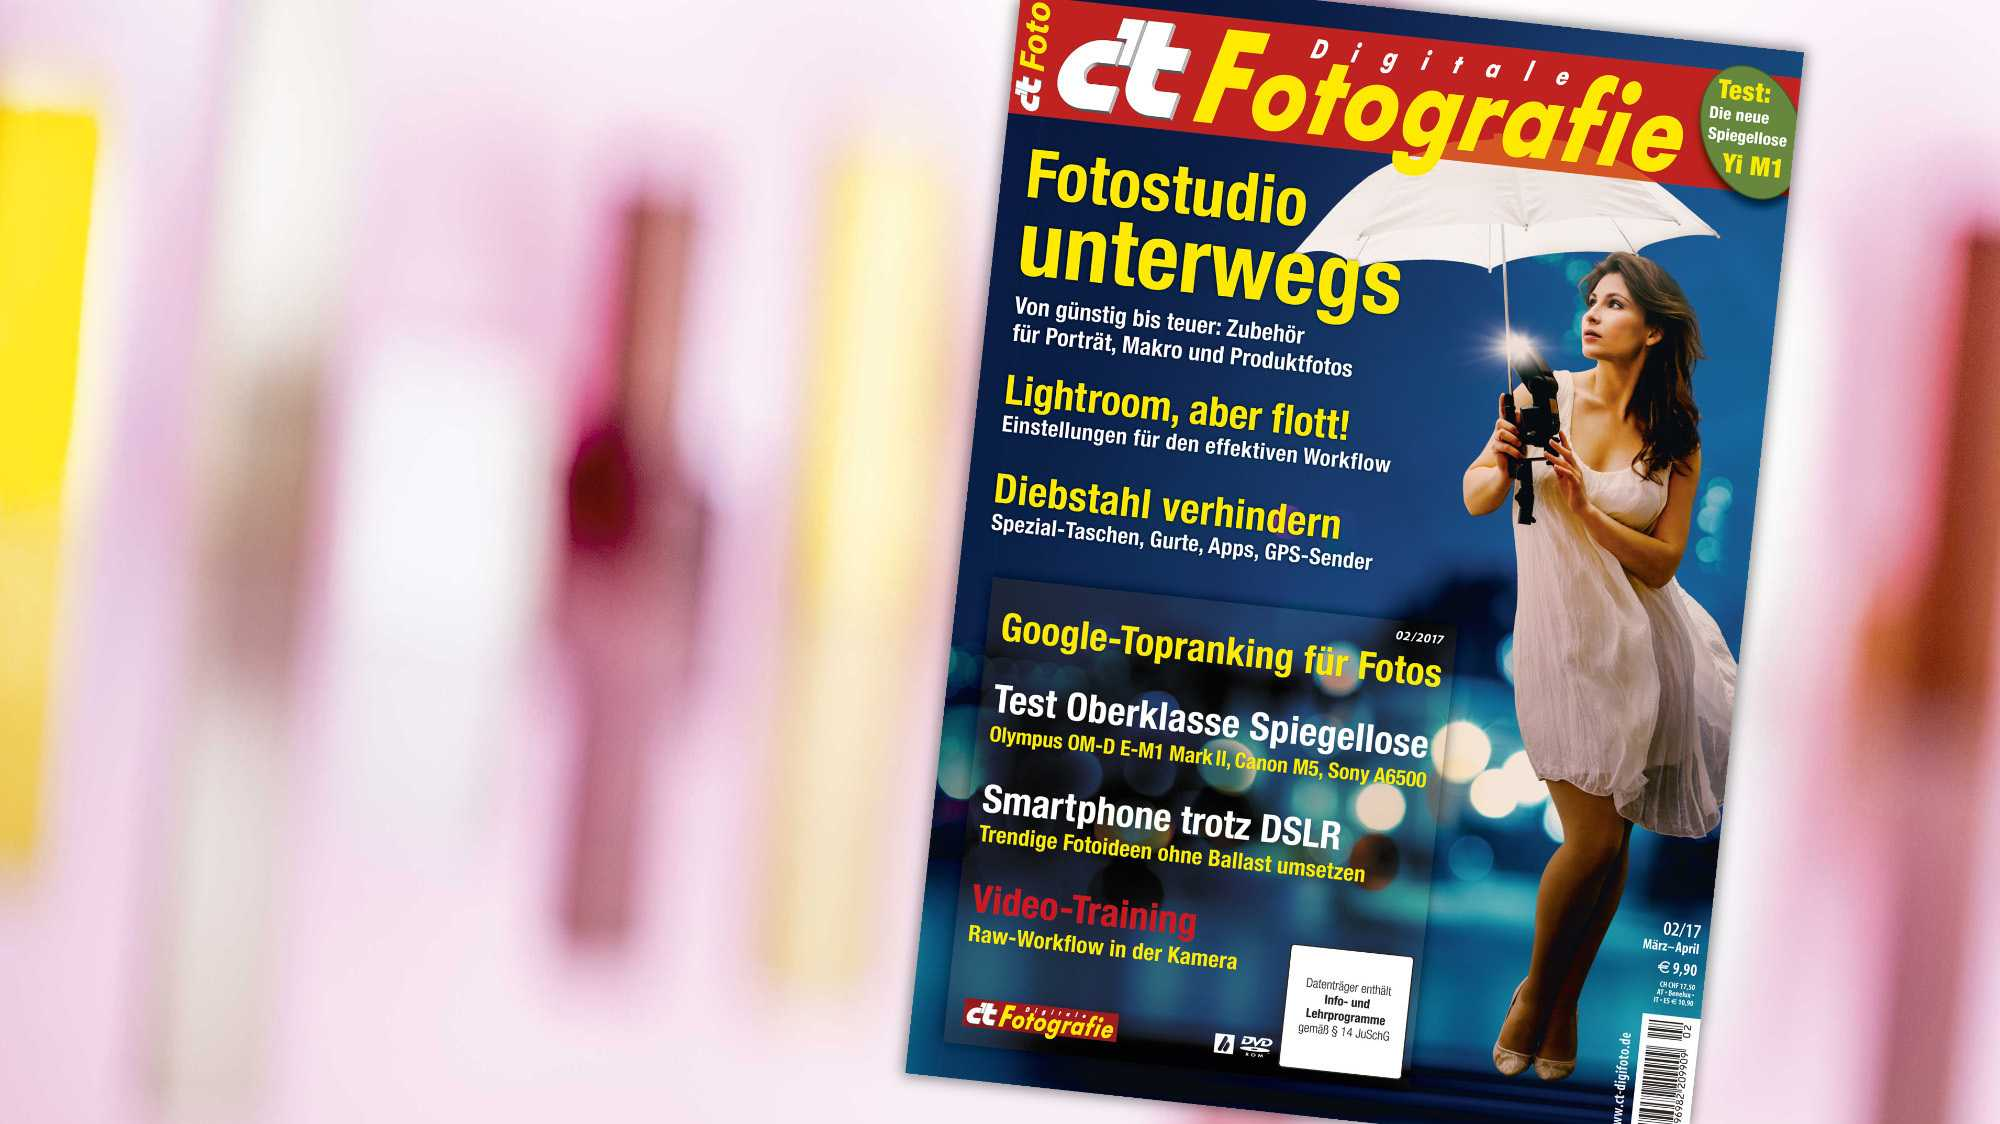 c't Fotografie: SEO mit Lightroom und Wordpress